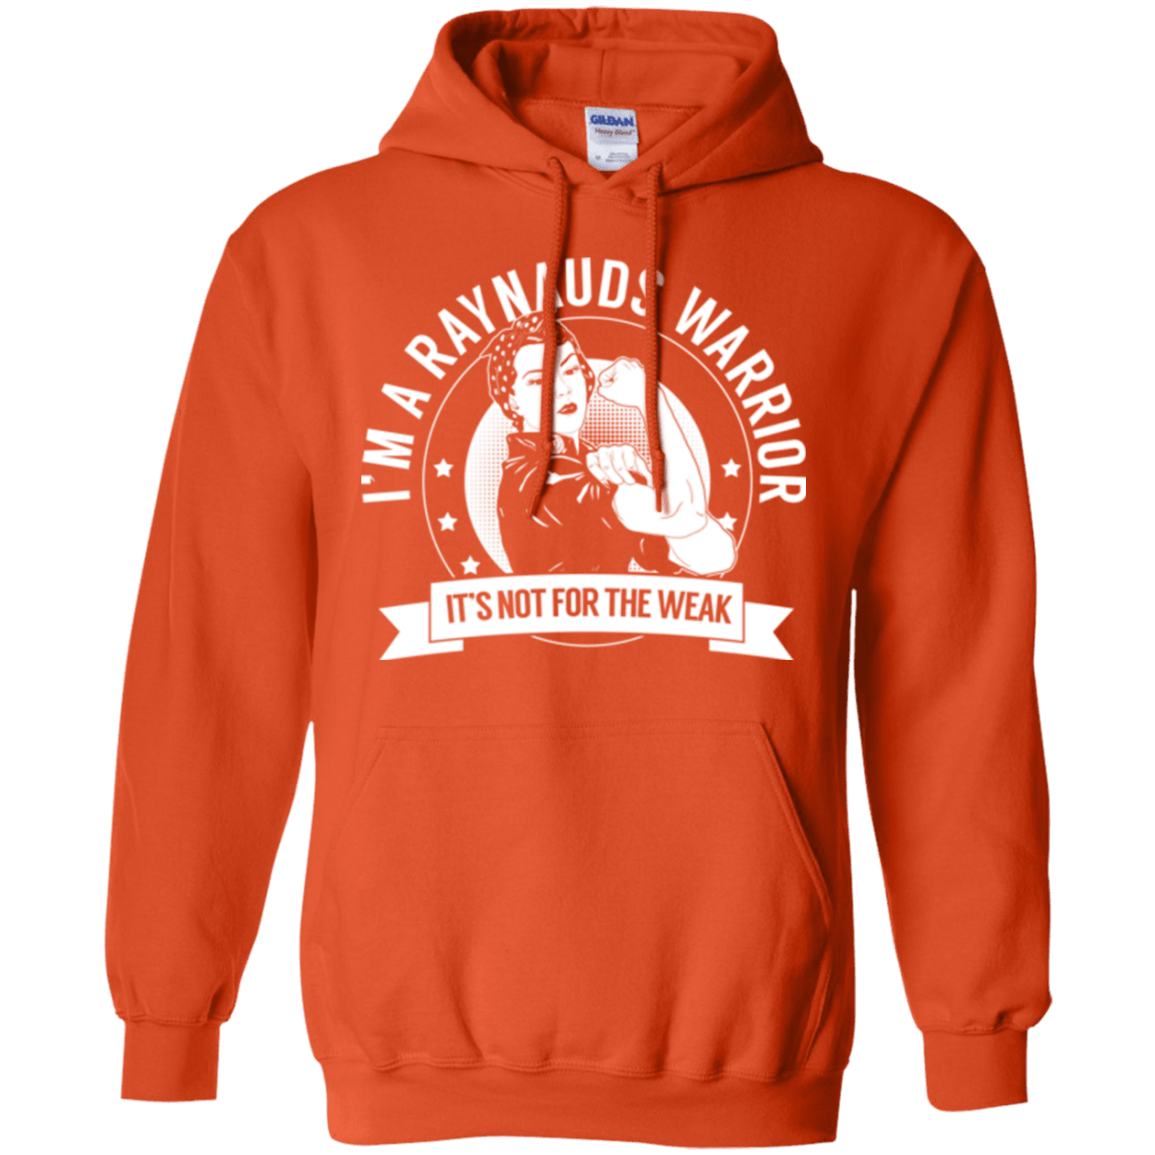 Raynaud's Disease - Raynauds Warrior Not For The Weak Pullover Hoodie 8 oz. - The Unchargeables